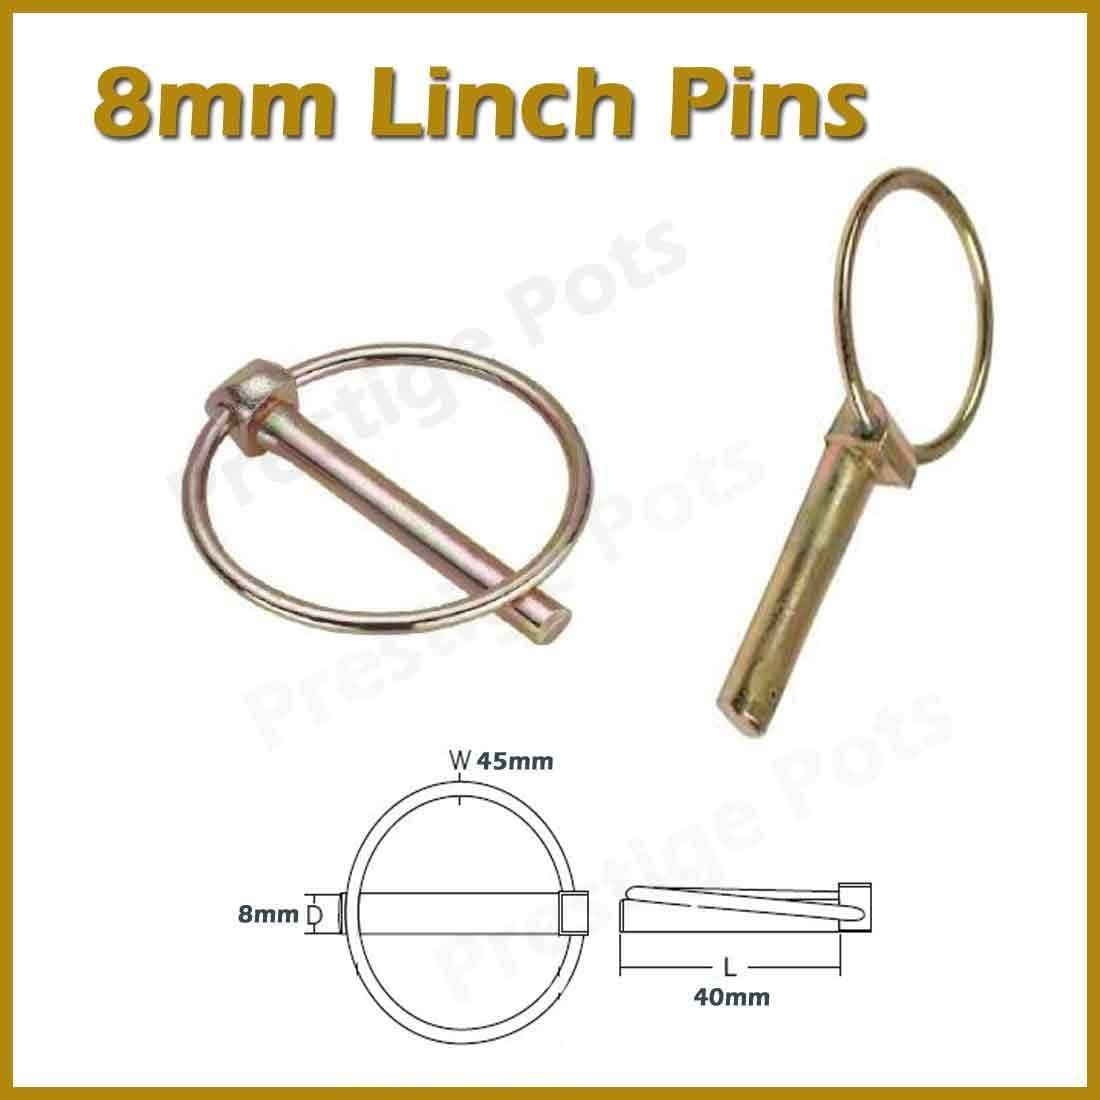 8mm Linch Pins Pack of 10 Length 40mm Ring 45mm Zinc Coated For Corrosion Protection Lynch Fastener Tractor Trailer Plant Agricultural Machinery